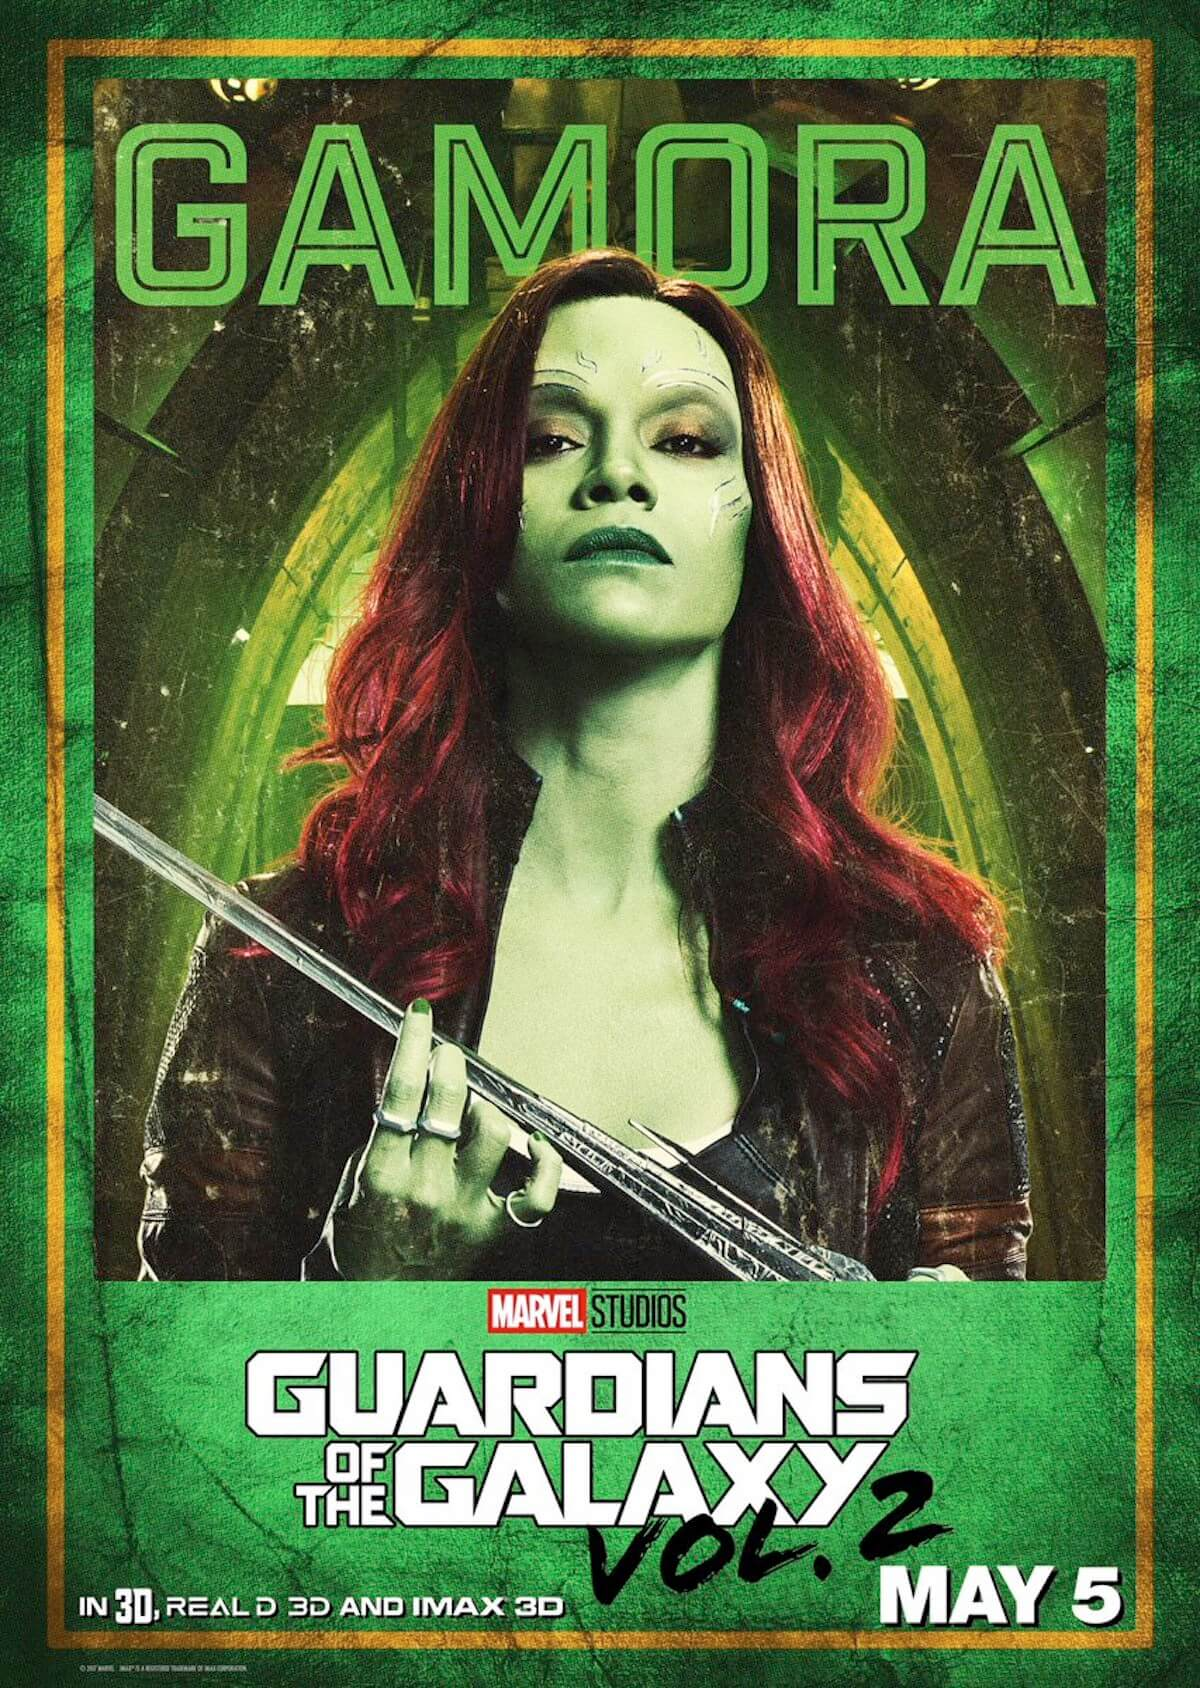 Guardians of the galaxy 2 poster gamora zoe saldana